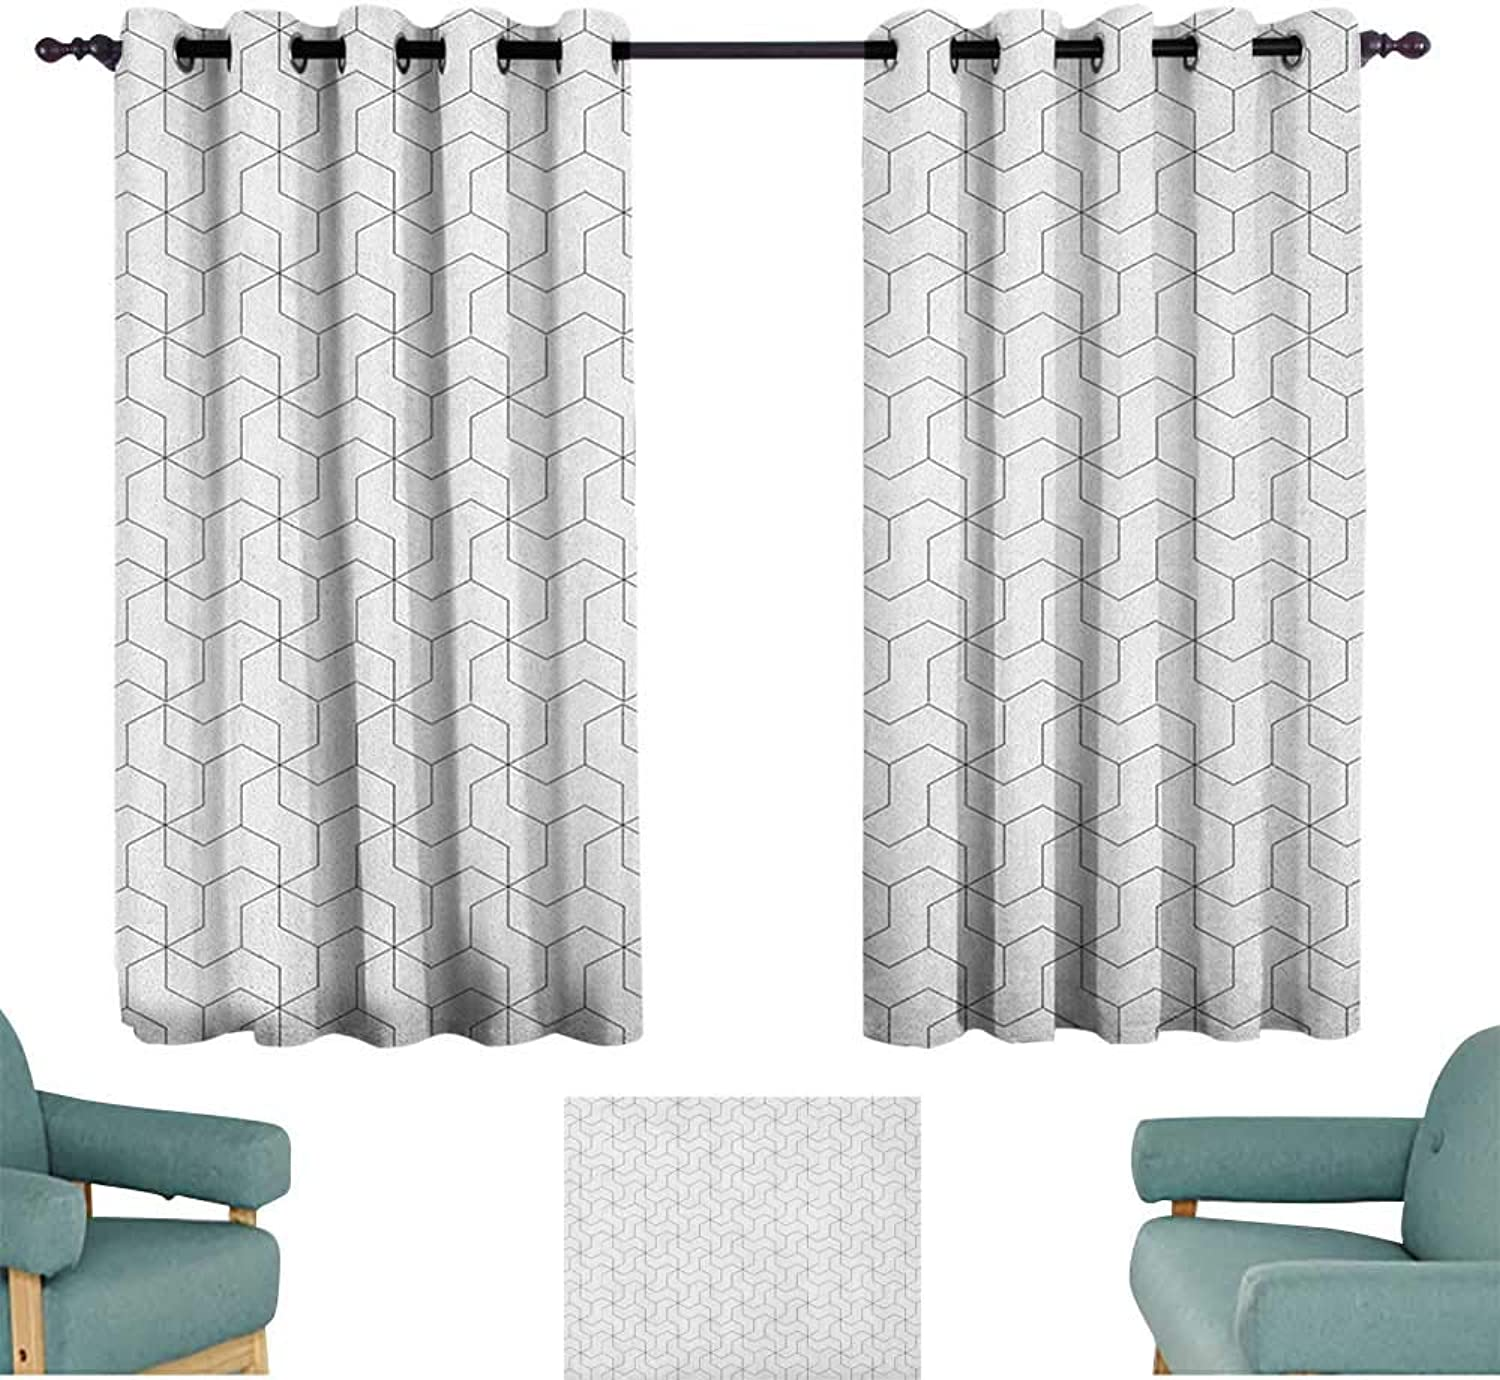 Anzhutwelve Black and White,Kids Decor Indo Curtain Drape Geometric Arrangement with Monochrome Design Lines and Optical Illusion 42 X63  Patterned Drape for Door